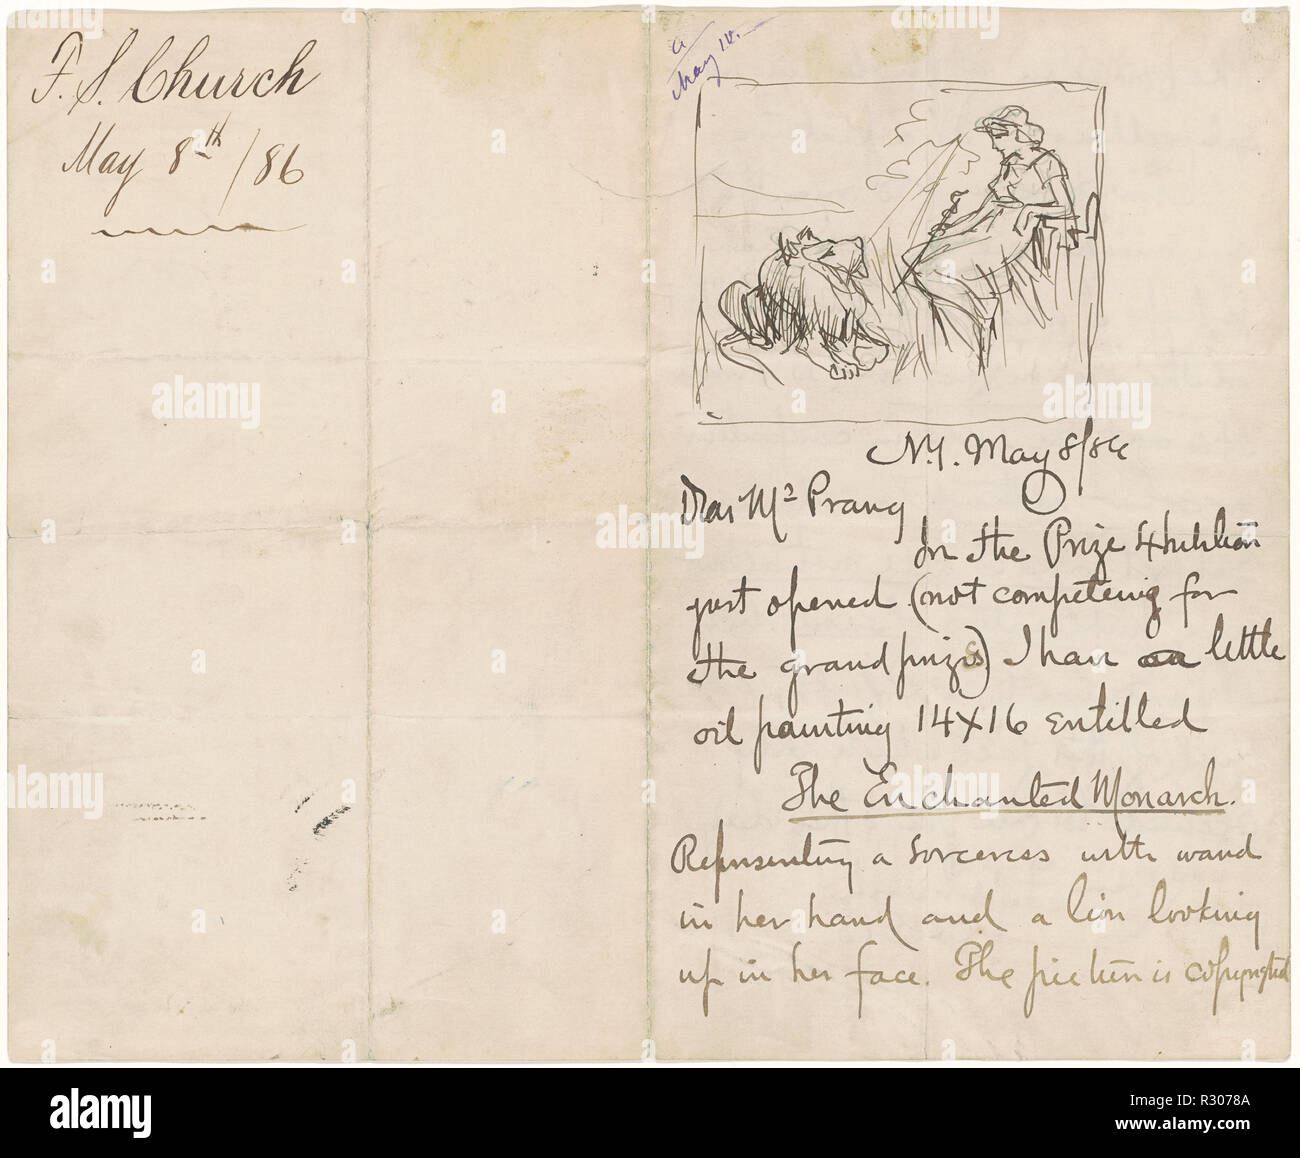 Study after 'The Enchanted Monarch'. Dated: 1886. Dimensions: sheet: 20.32 × 24.77 cm (8 × 9 3/4 in.). Medium: pen and black ink on hand-written letter to Mr. Prang from Frederick Stuart Church. Museum: National Gallery of Art, Washington DC. - Stock Image